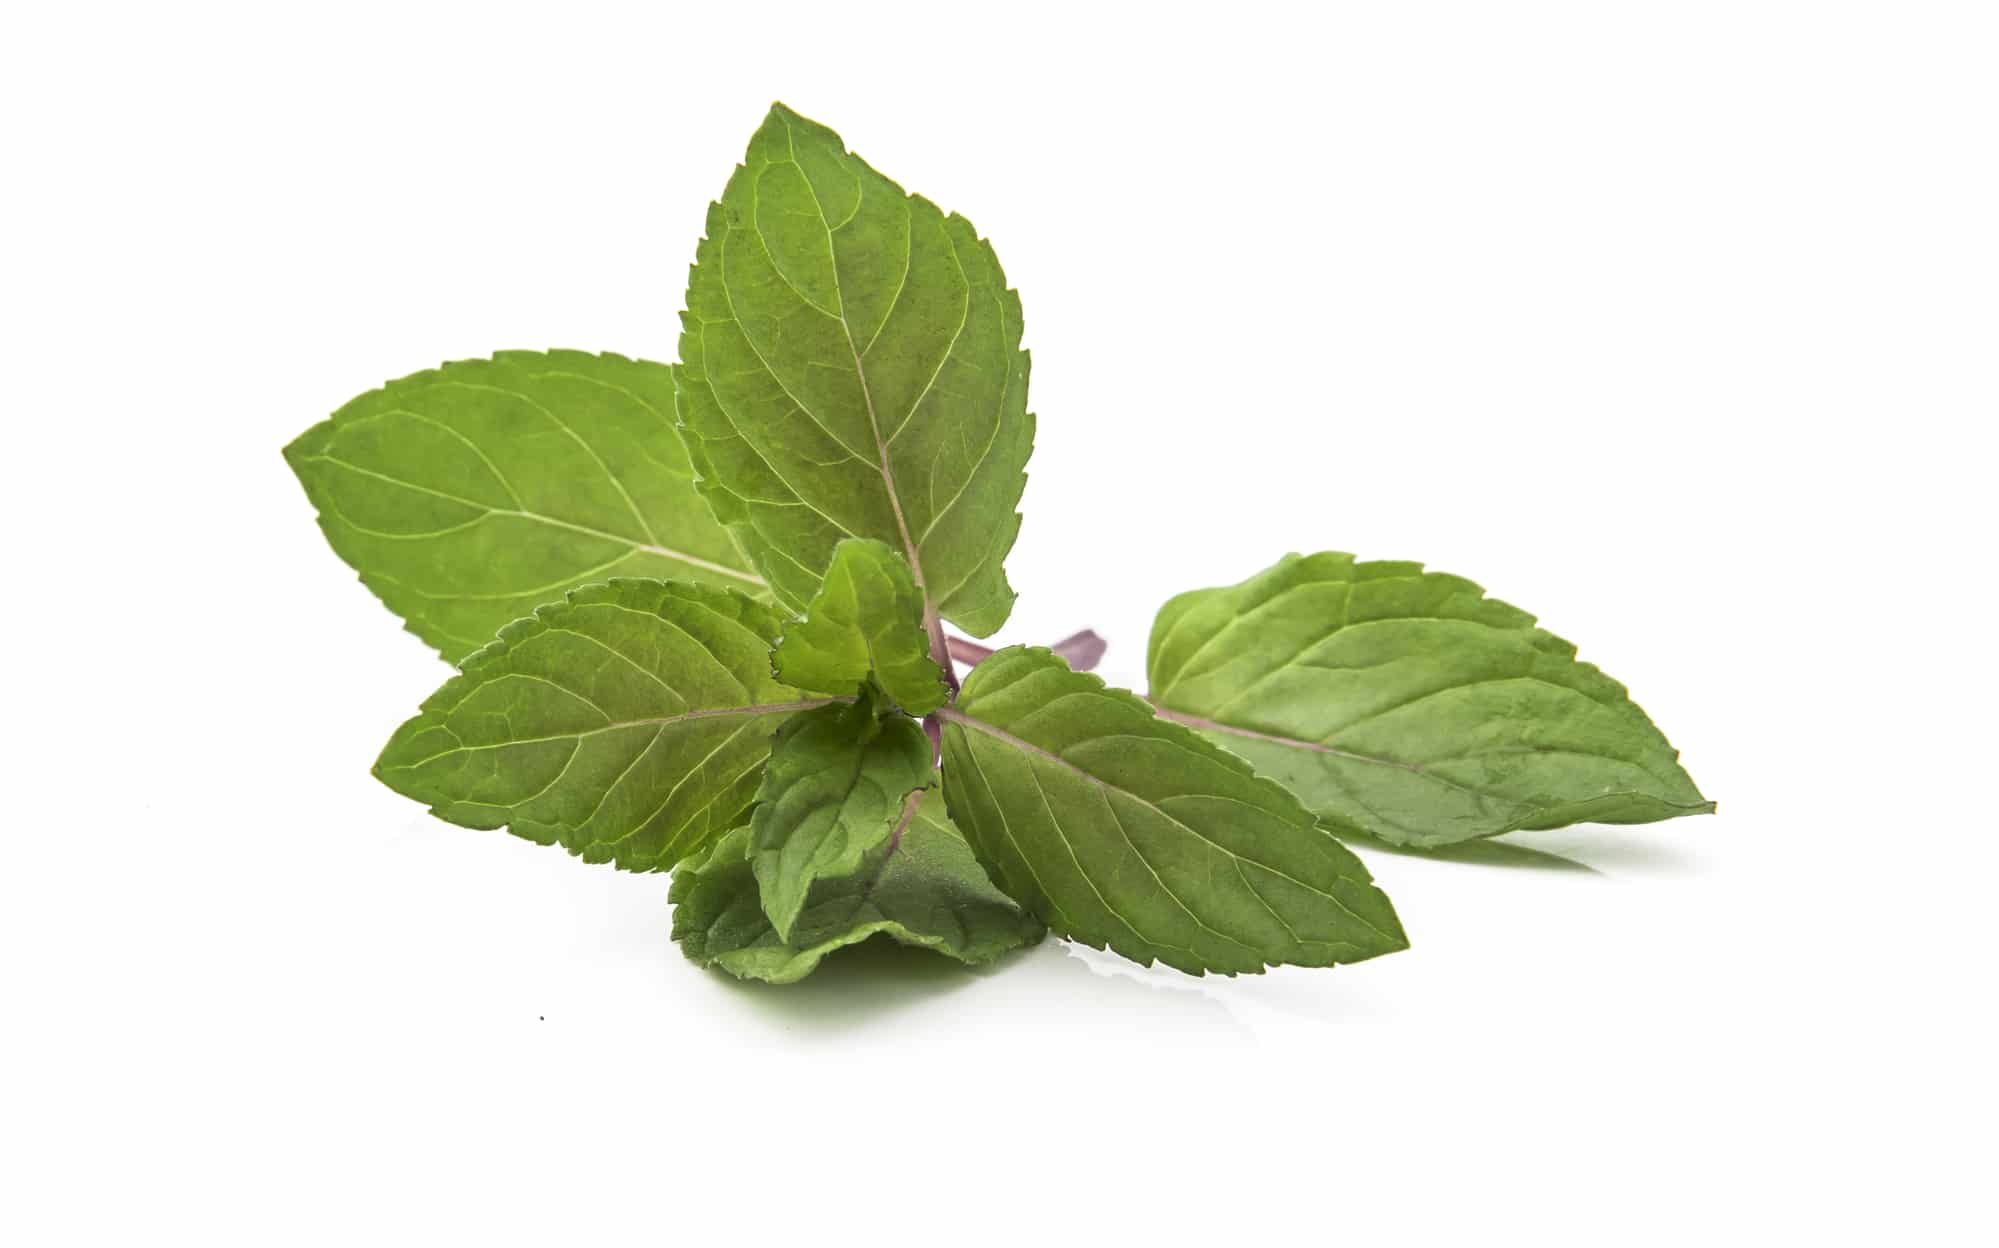 Chocolate Mint: A Controversial Mint